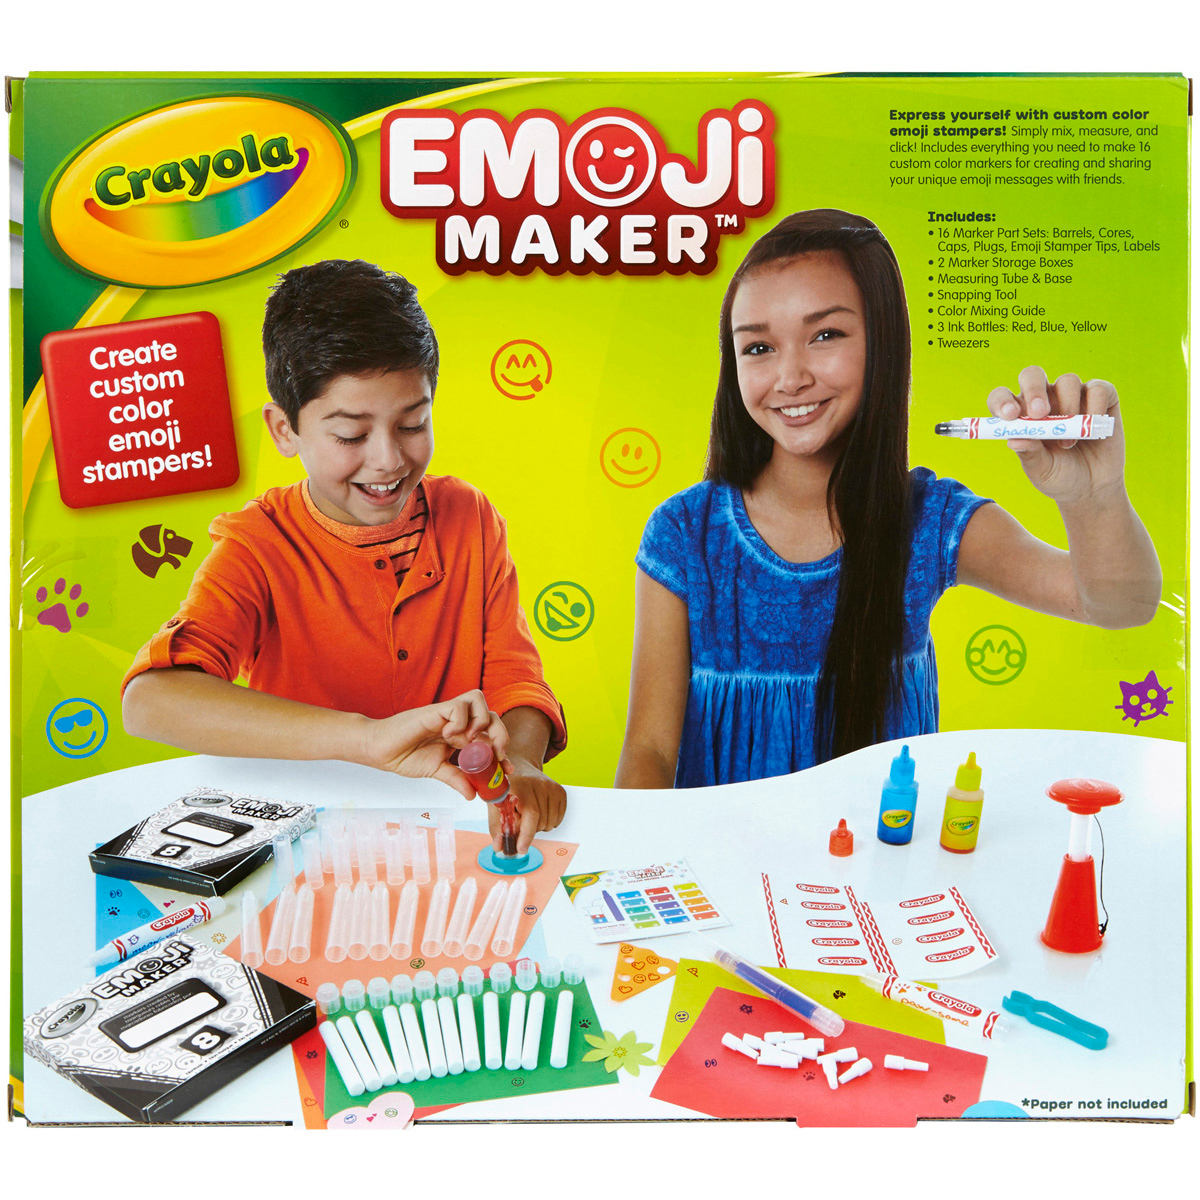 Crayola Emoji Marker Maker with Stamper Tips Only $10.83